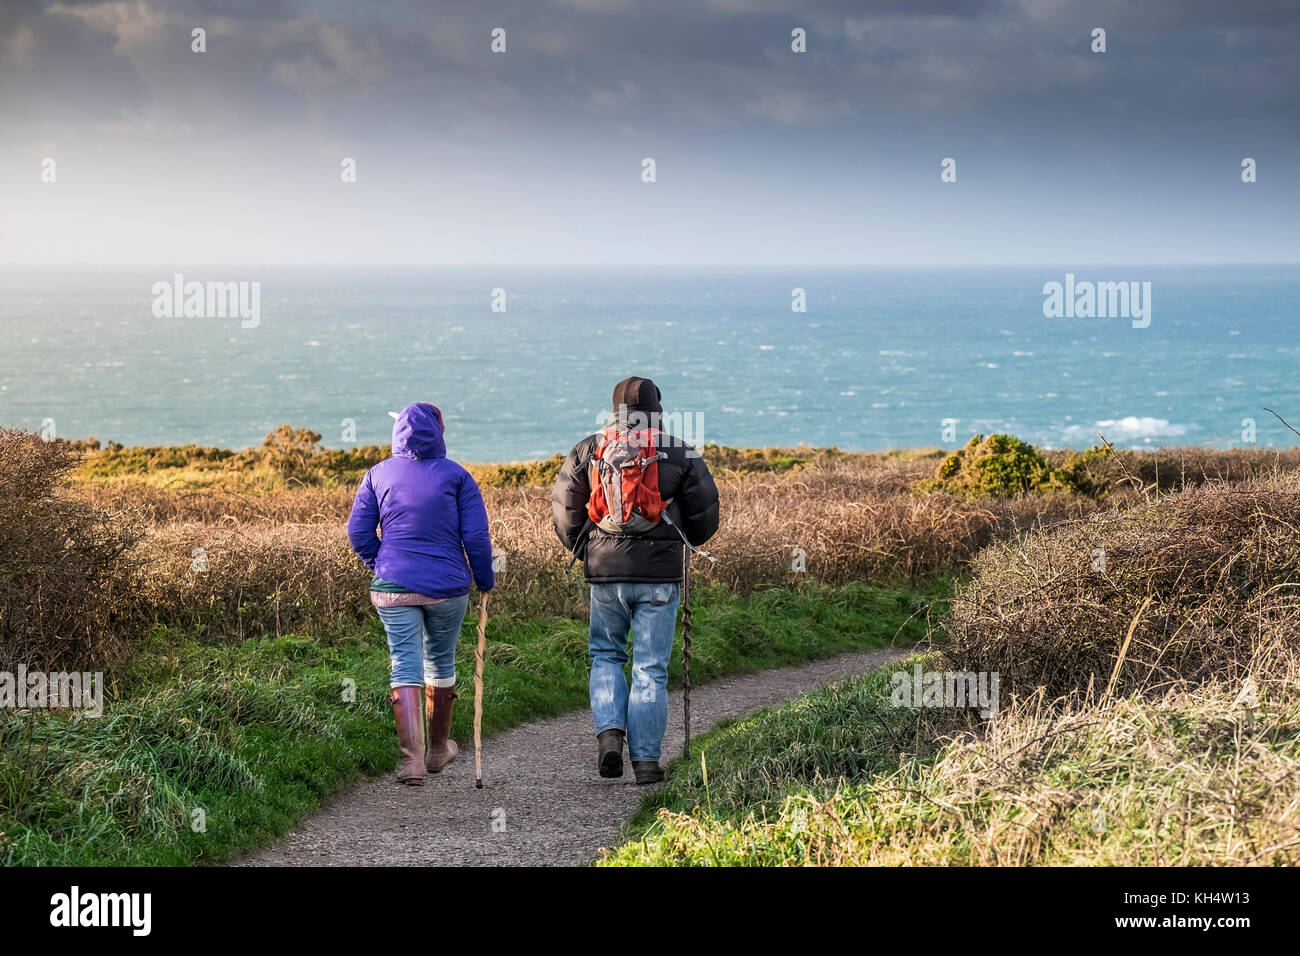 Two walkers people couple walking on a footpath at Beduthan in Cornwall UK. - Stock Image